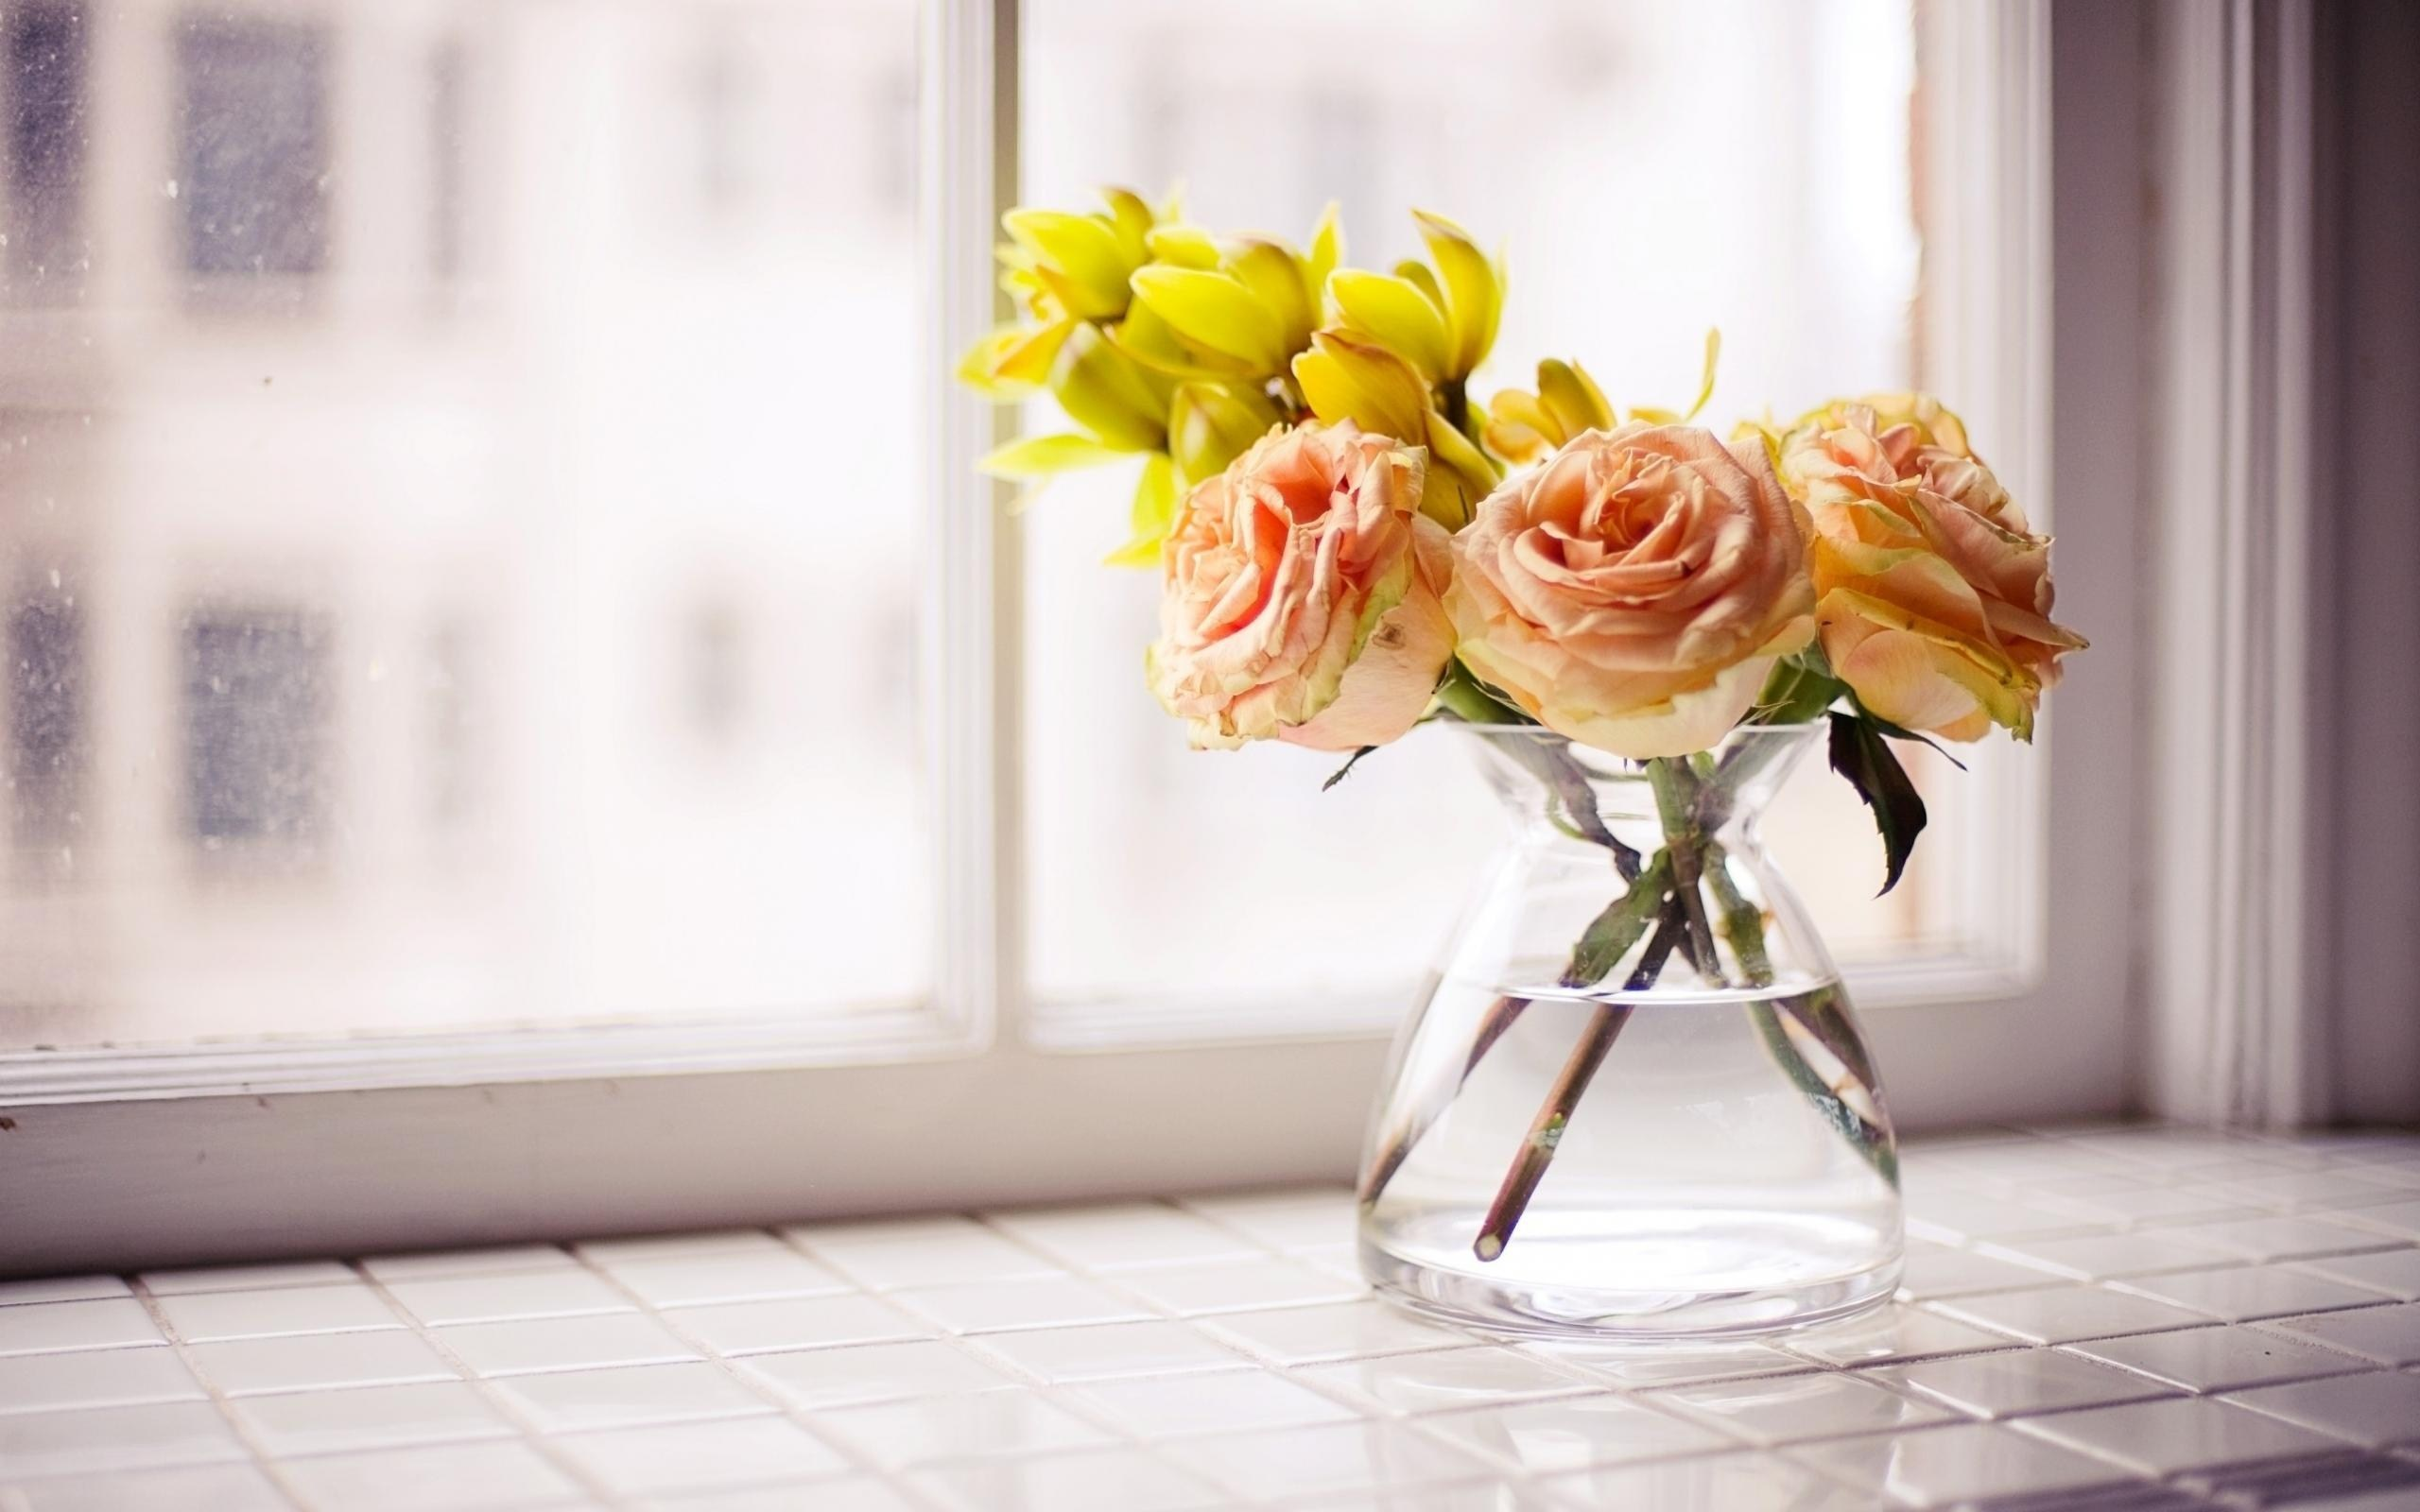 Bouquet in a vase wallpapers high quality download free bouquet in a vase wallpapers izmirmasajfo